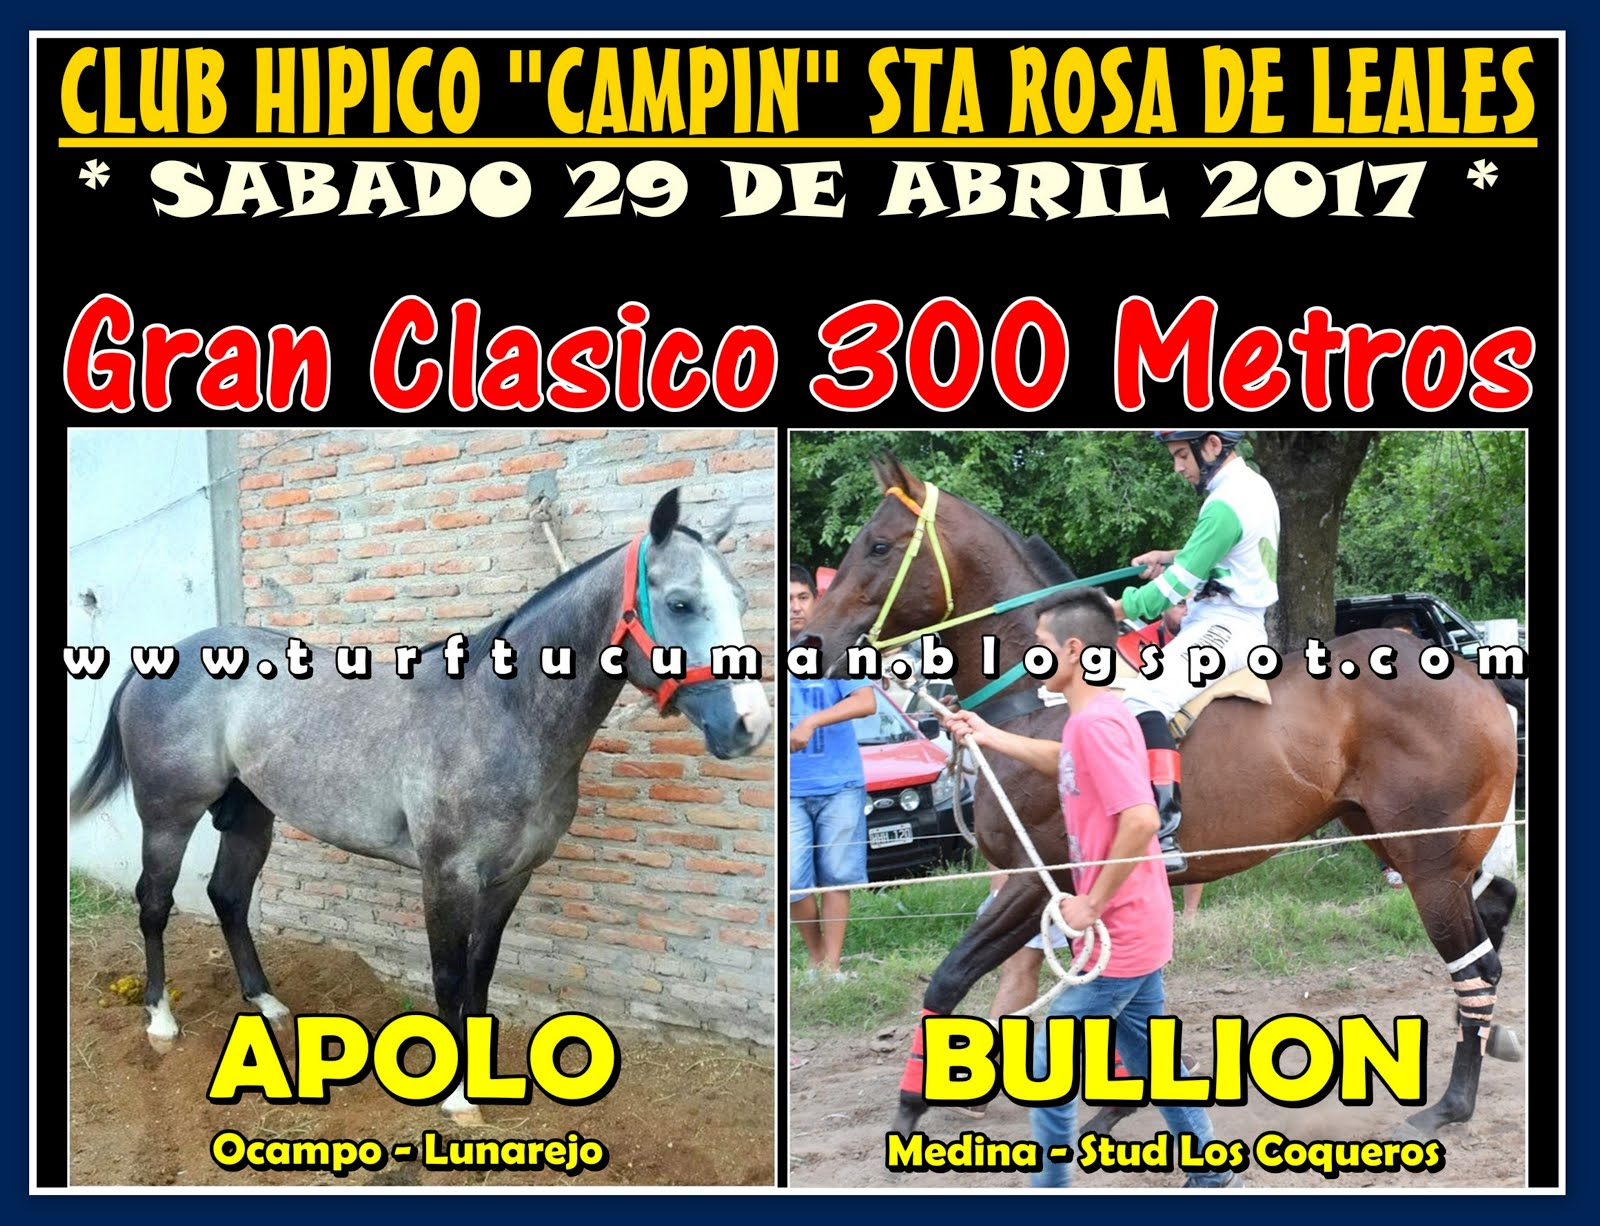 APOLO VS BULLION